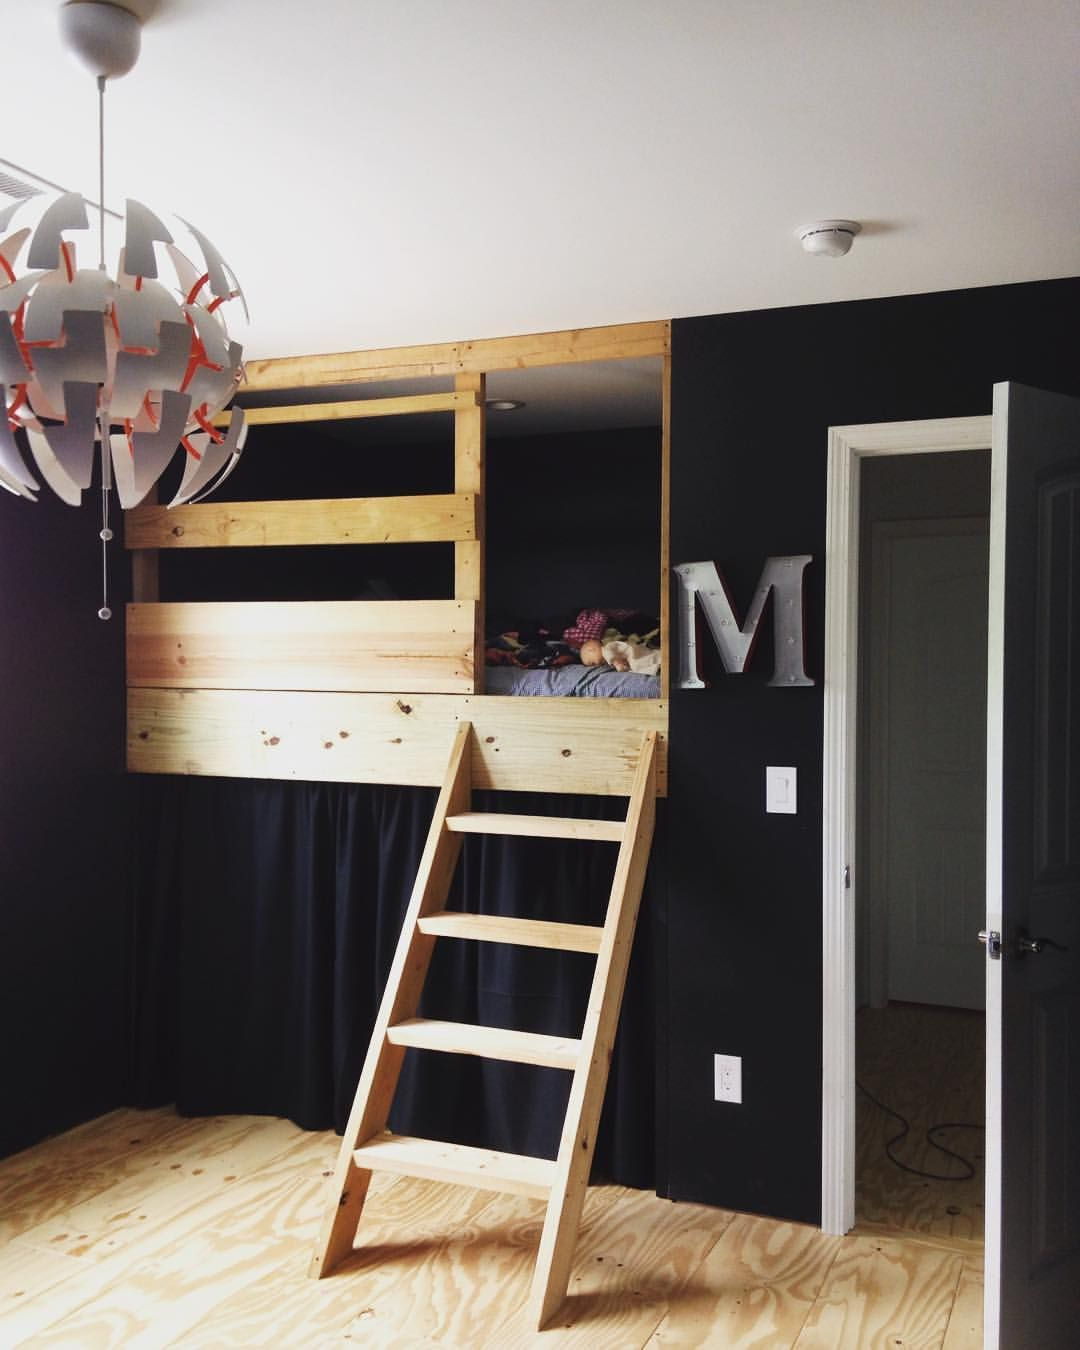 Loft Bed With Closet Underneath: We Built In A Full Size Loft Bed Into Where The Closet